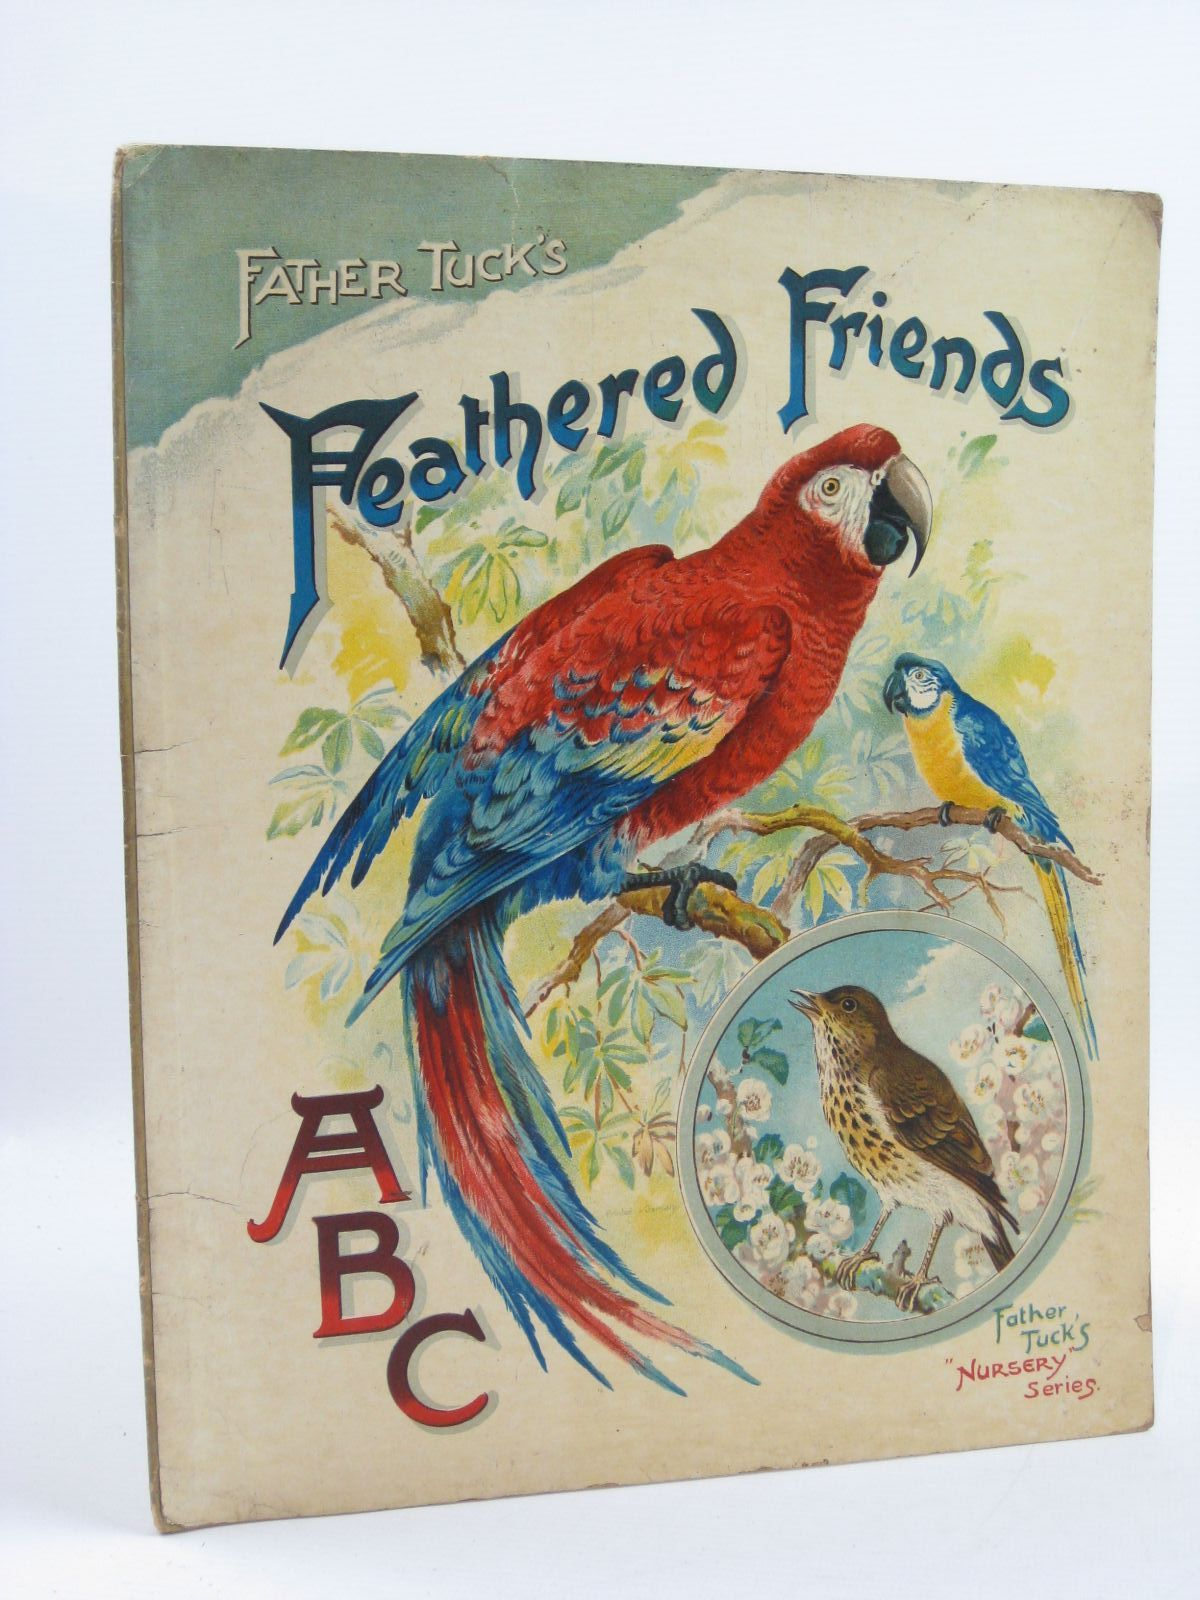 Photo of FATHER TUCK'S FEATHERED FRIENDS ABC